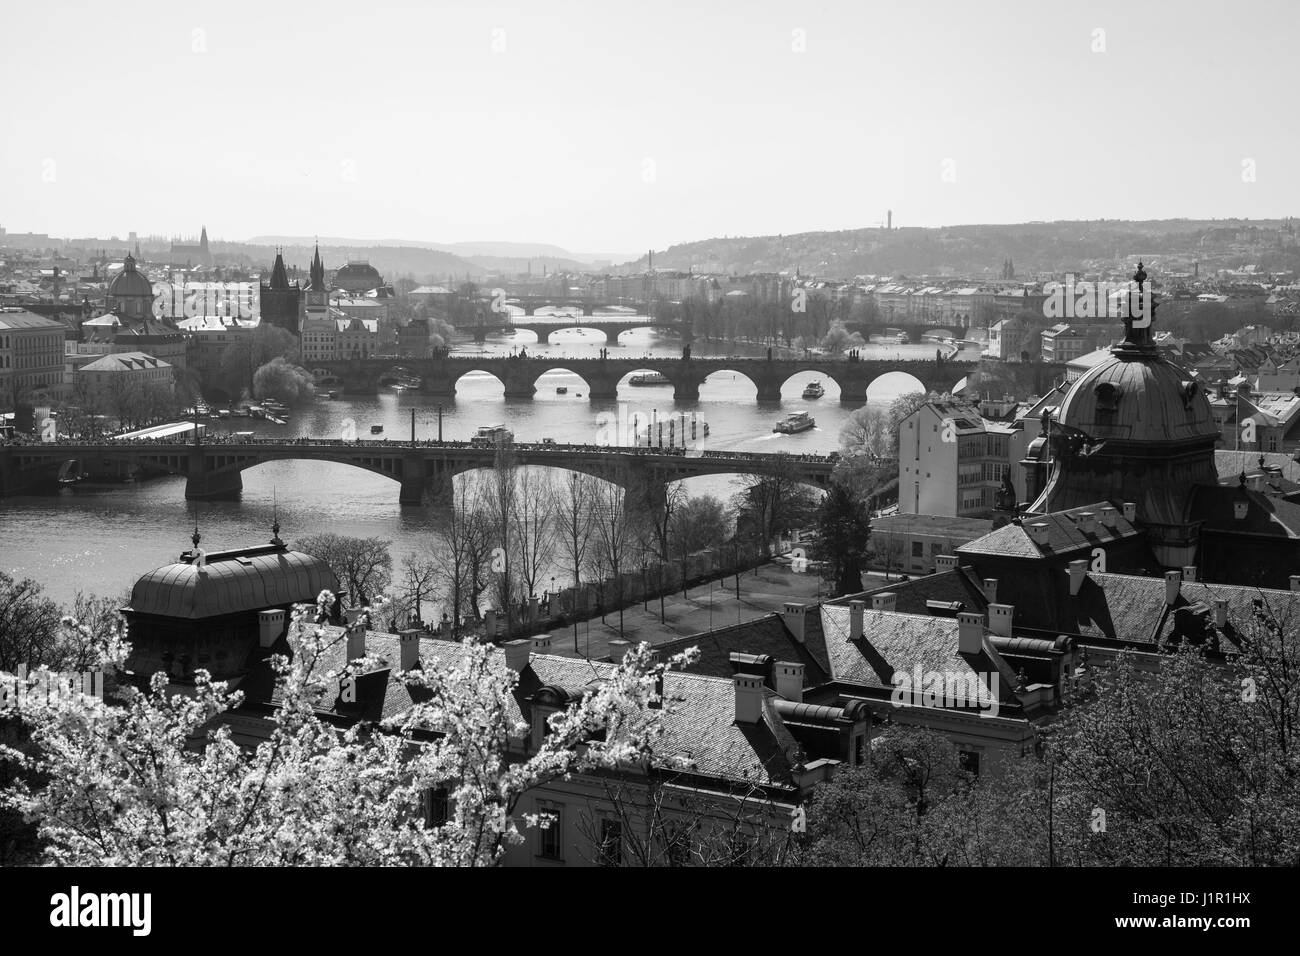 View over the roof tops of Prague showing some of its many bridges over the river Vltava taken in black and white - Stock Image